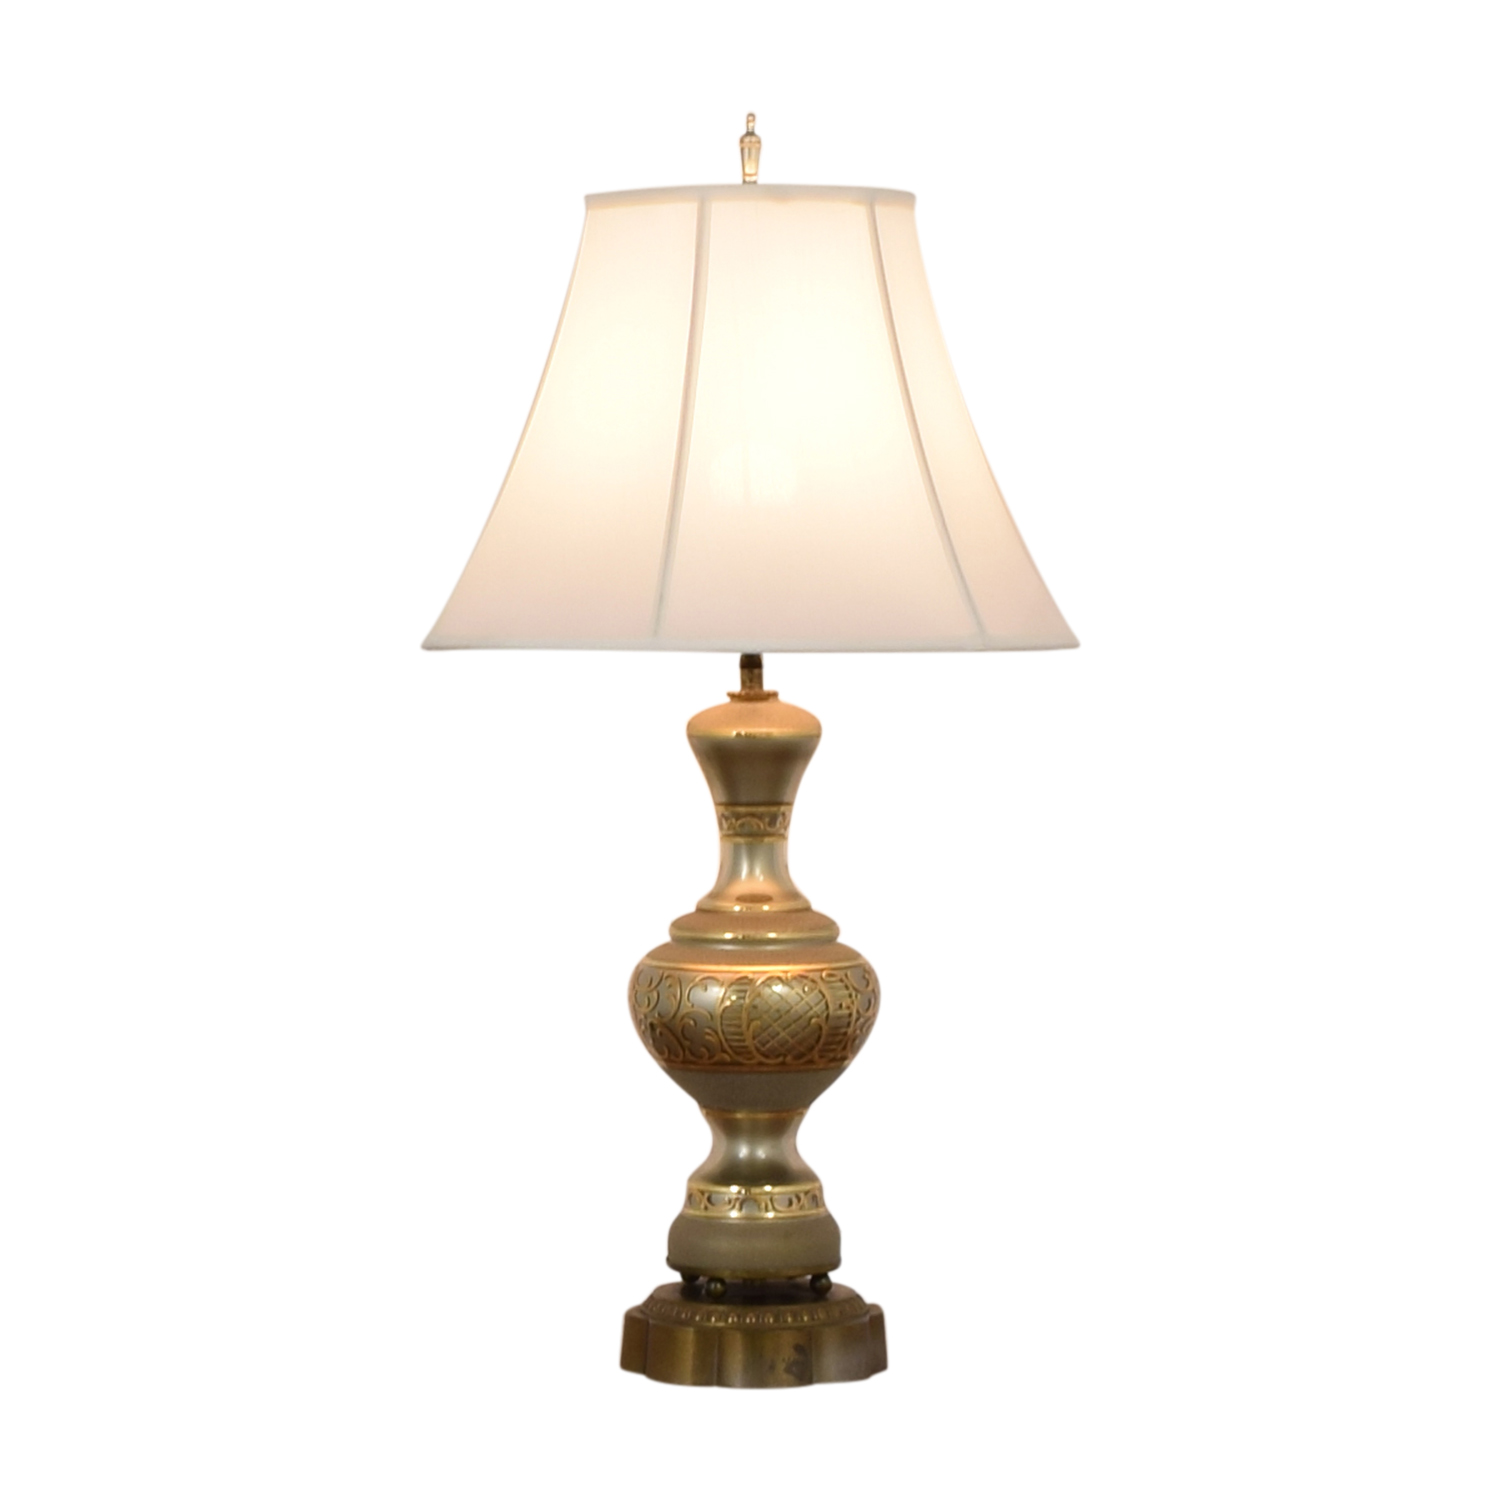 Vintage Gold Table Lamp